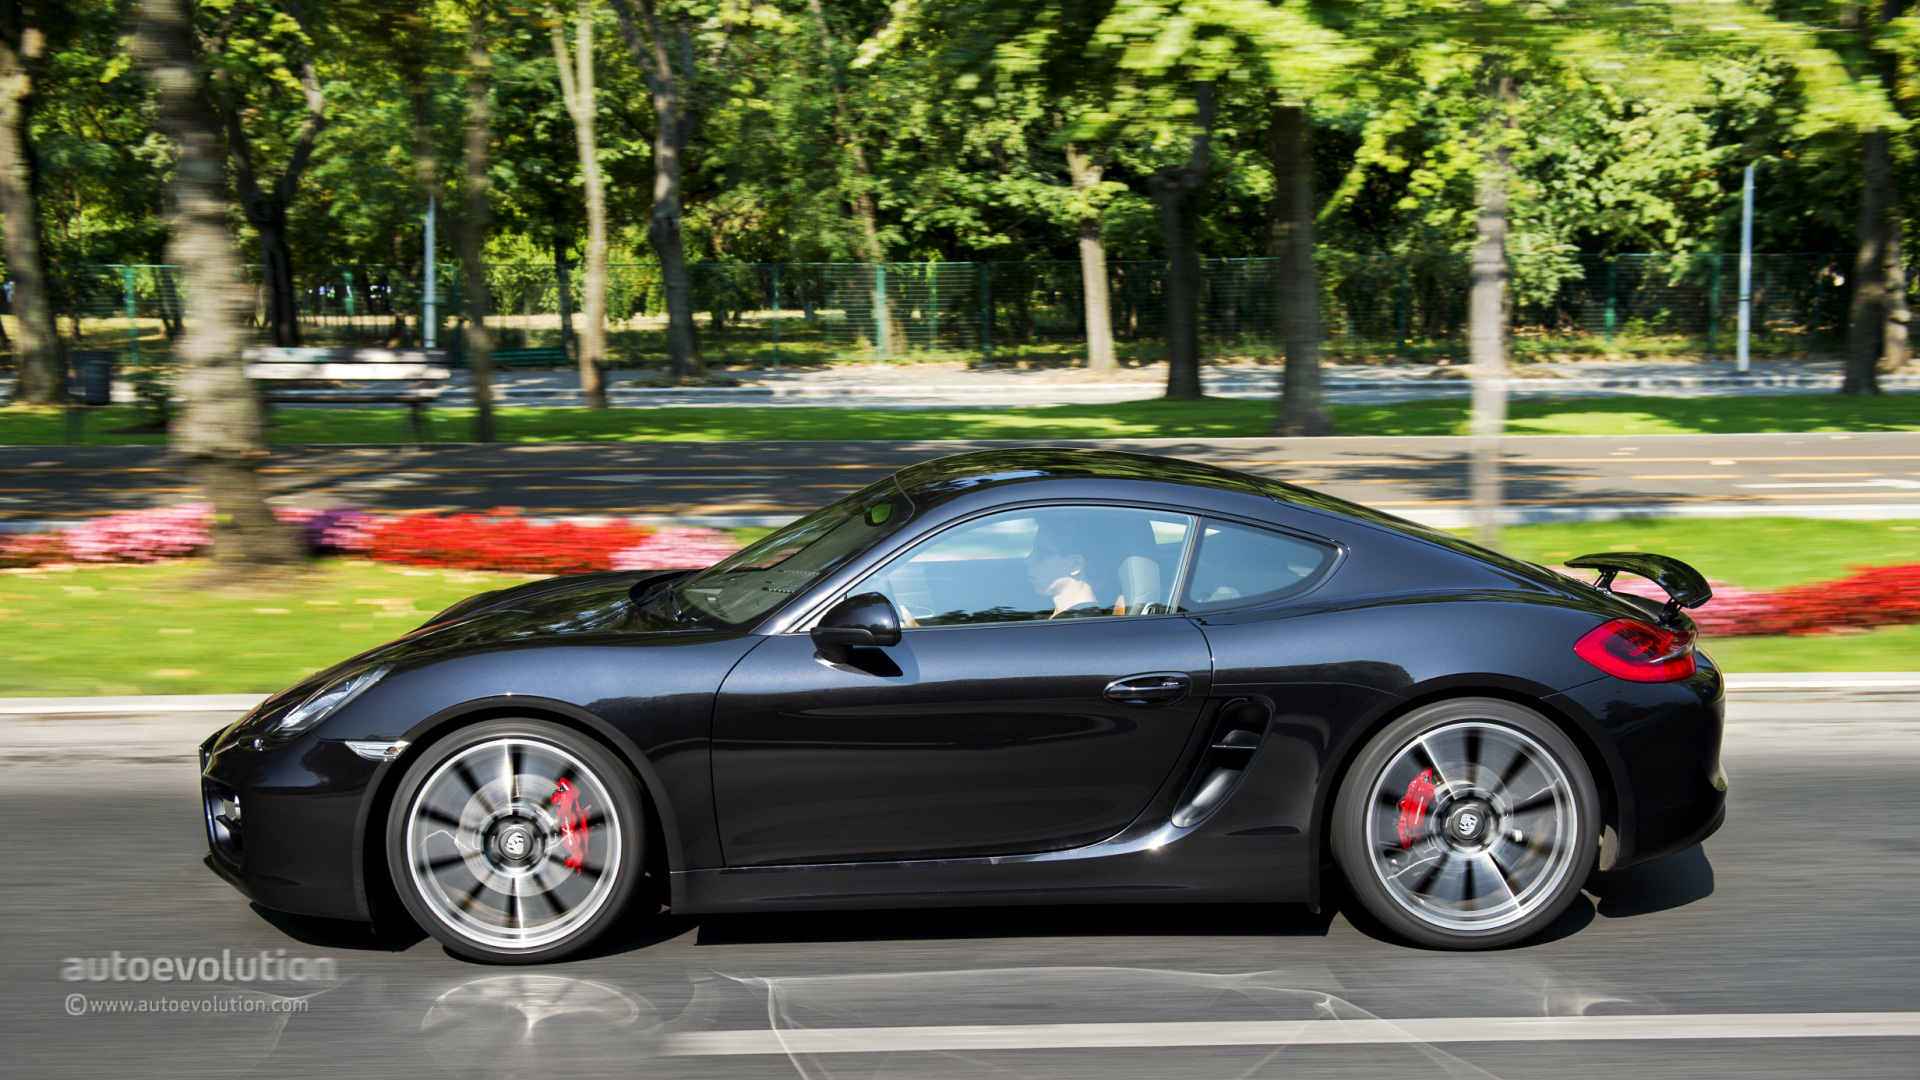 2014 porsche cayman s review page 4 autoevolution. Black Bedroom Furniture Sets. Home Design Ideas